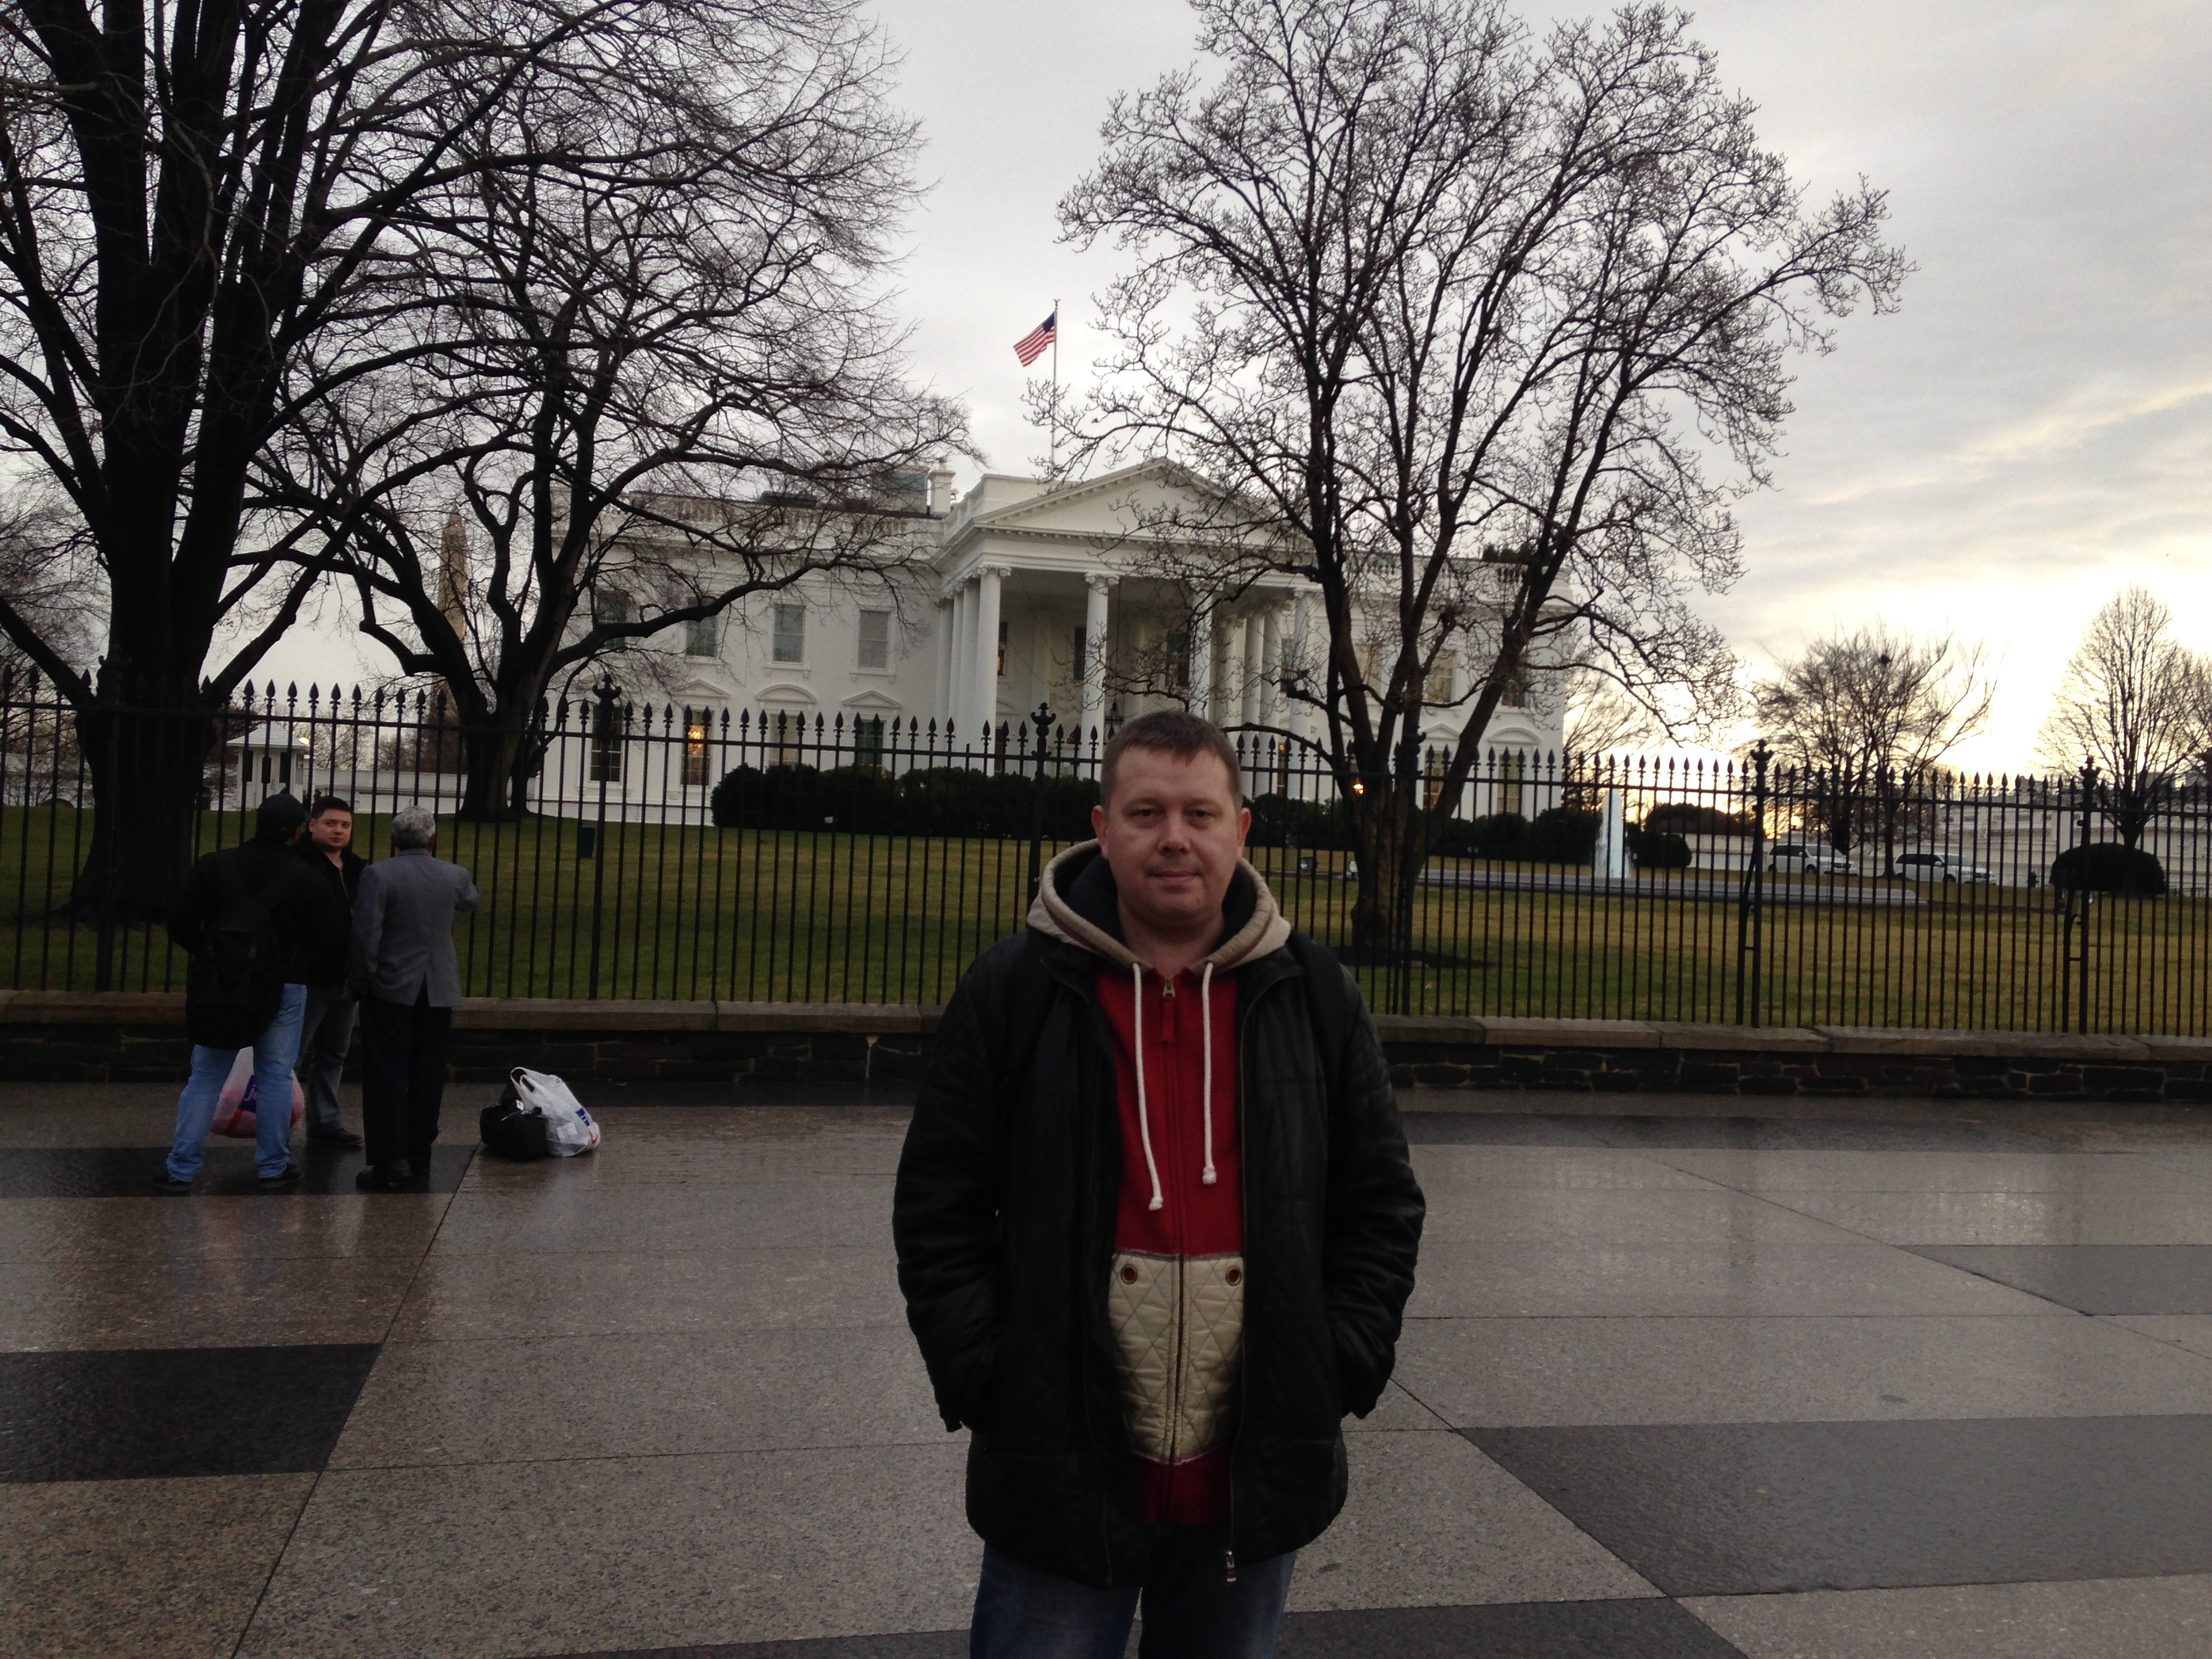 White House, Washington D